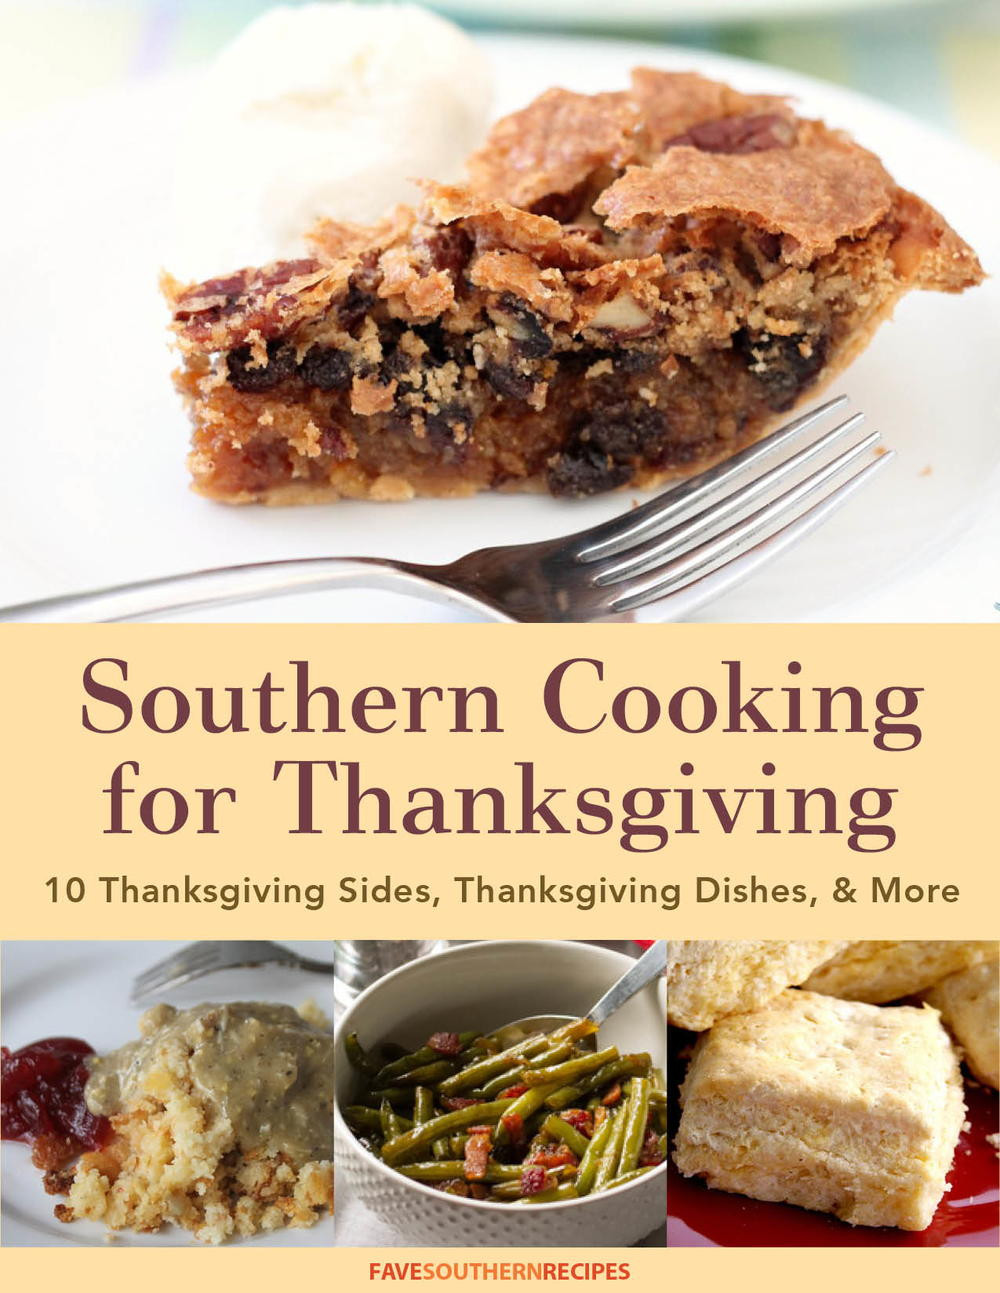 Southern Thanksgiving Desserts  Southern Cooking for Thanksgiving 10 Thanksgiving Sides